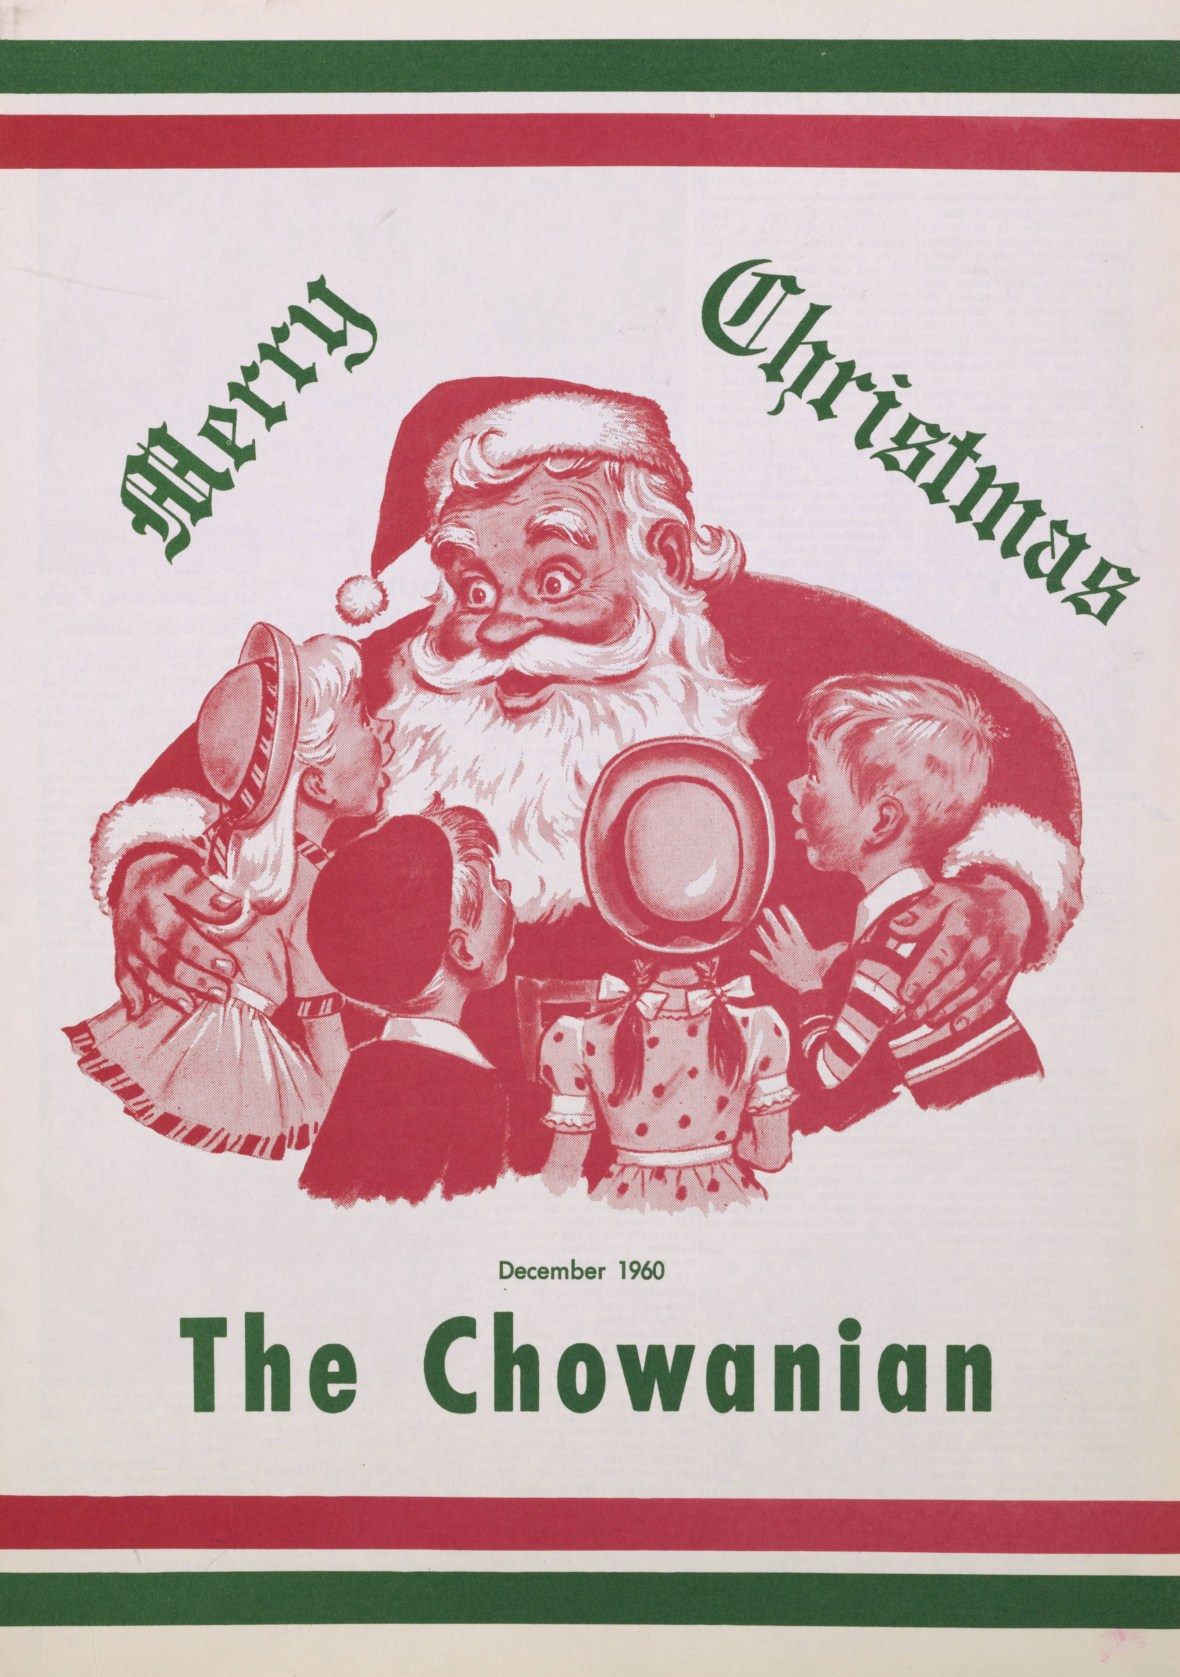 The Chowanian front page - Chowan College student newspaper - Murfreesboro, North Carolina U.S.A. - December 1960